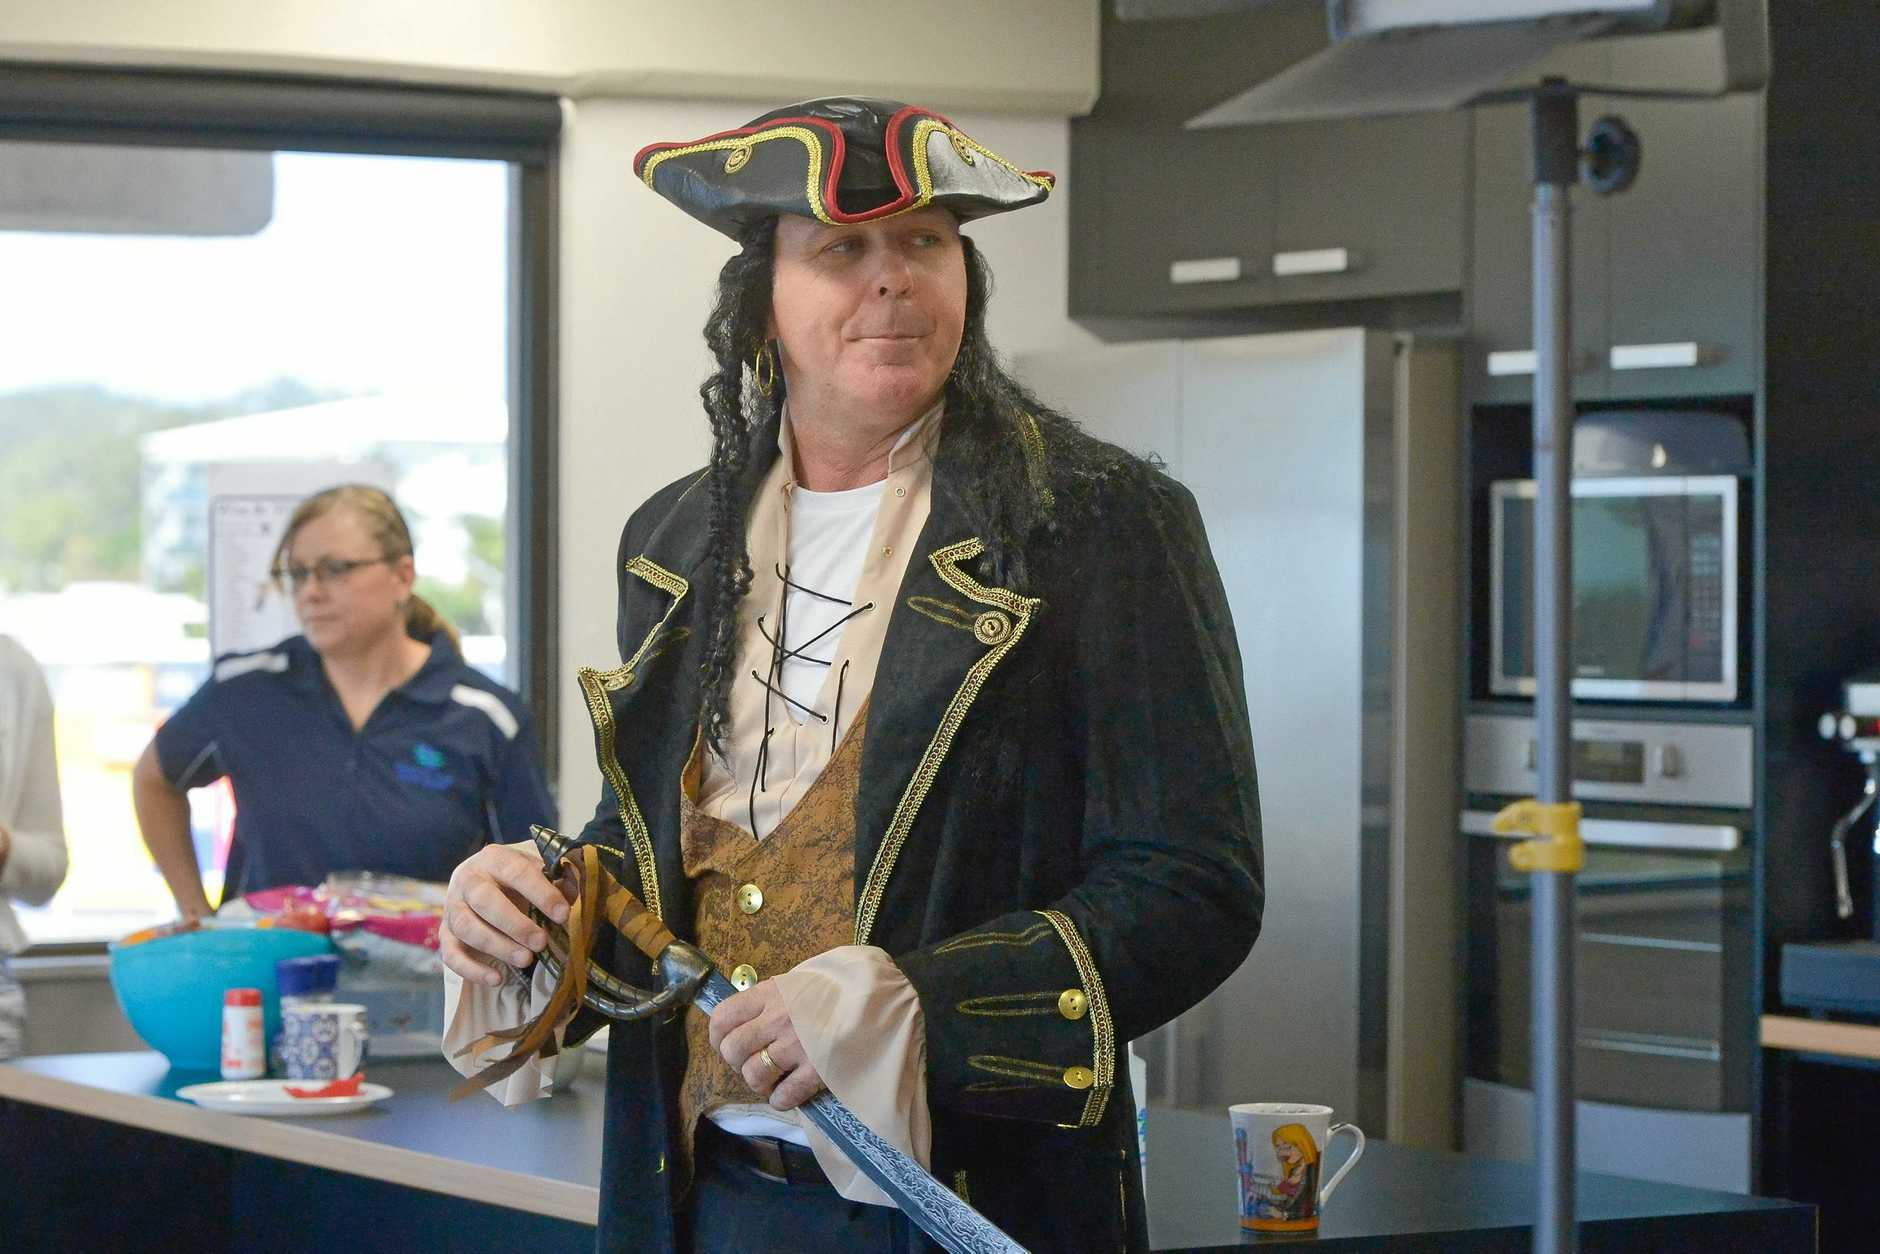 Best dressed male went to Paul Howlett.Gladstone Area Water Board had a pirate day fund raiser for 2yo Bella Kasper.